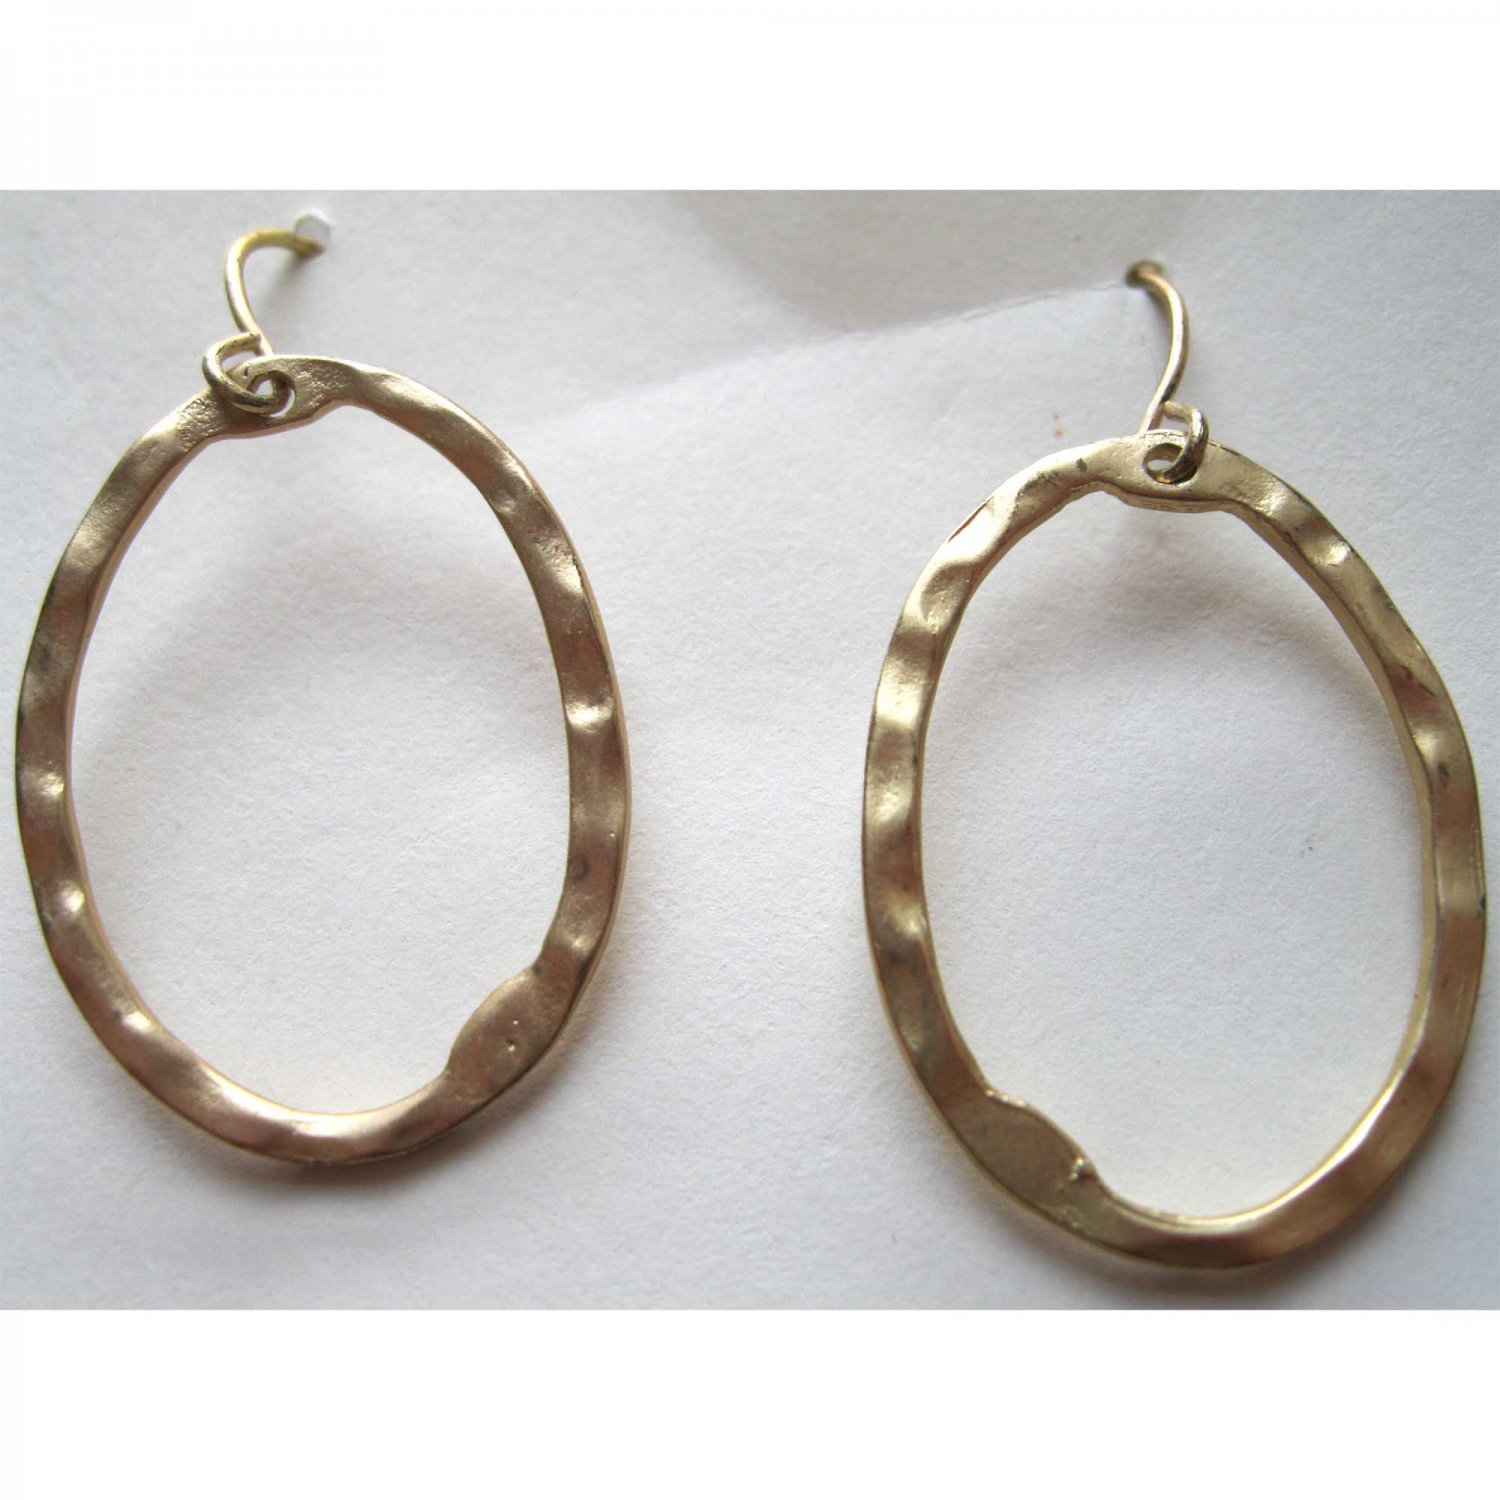 Matt gold oval drop fashion earrings